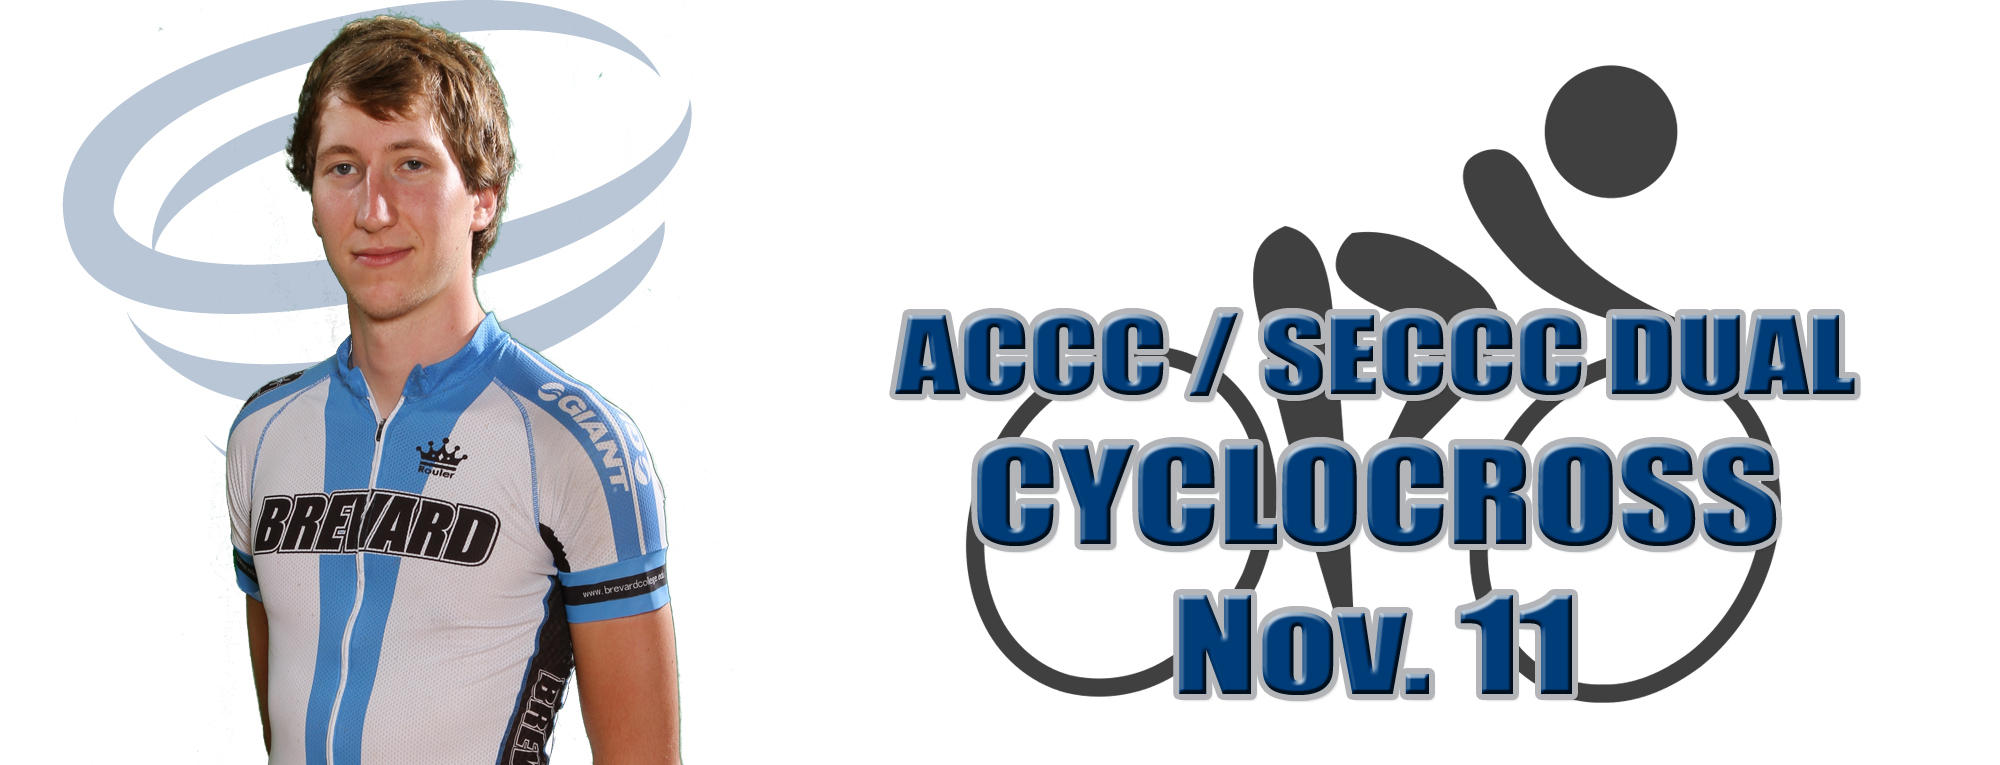 Cyclocross Set to Participate in ACCC / SECCC Dual